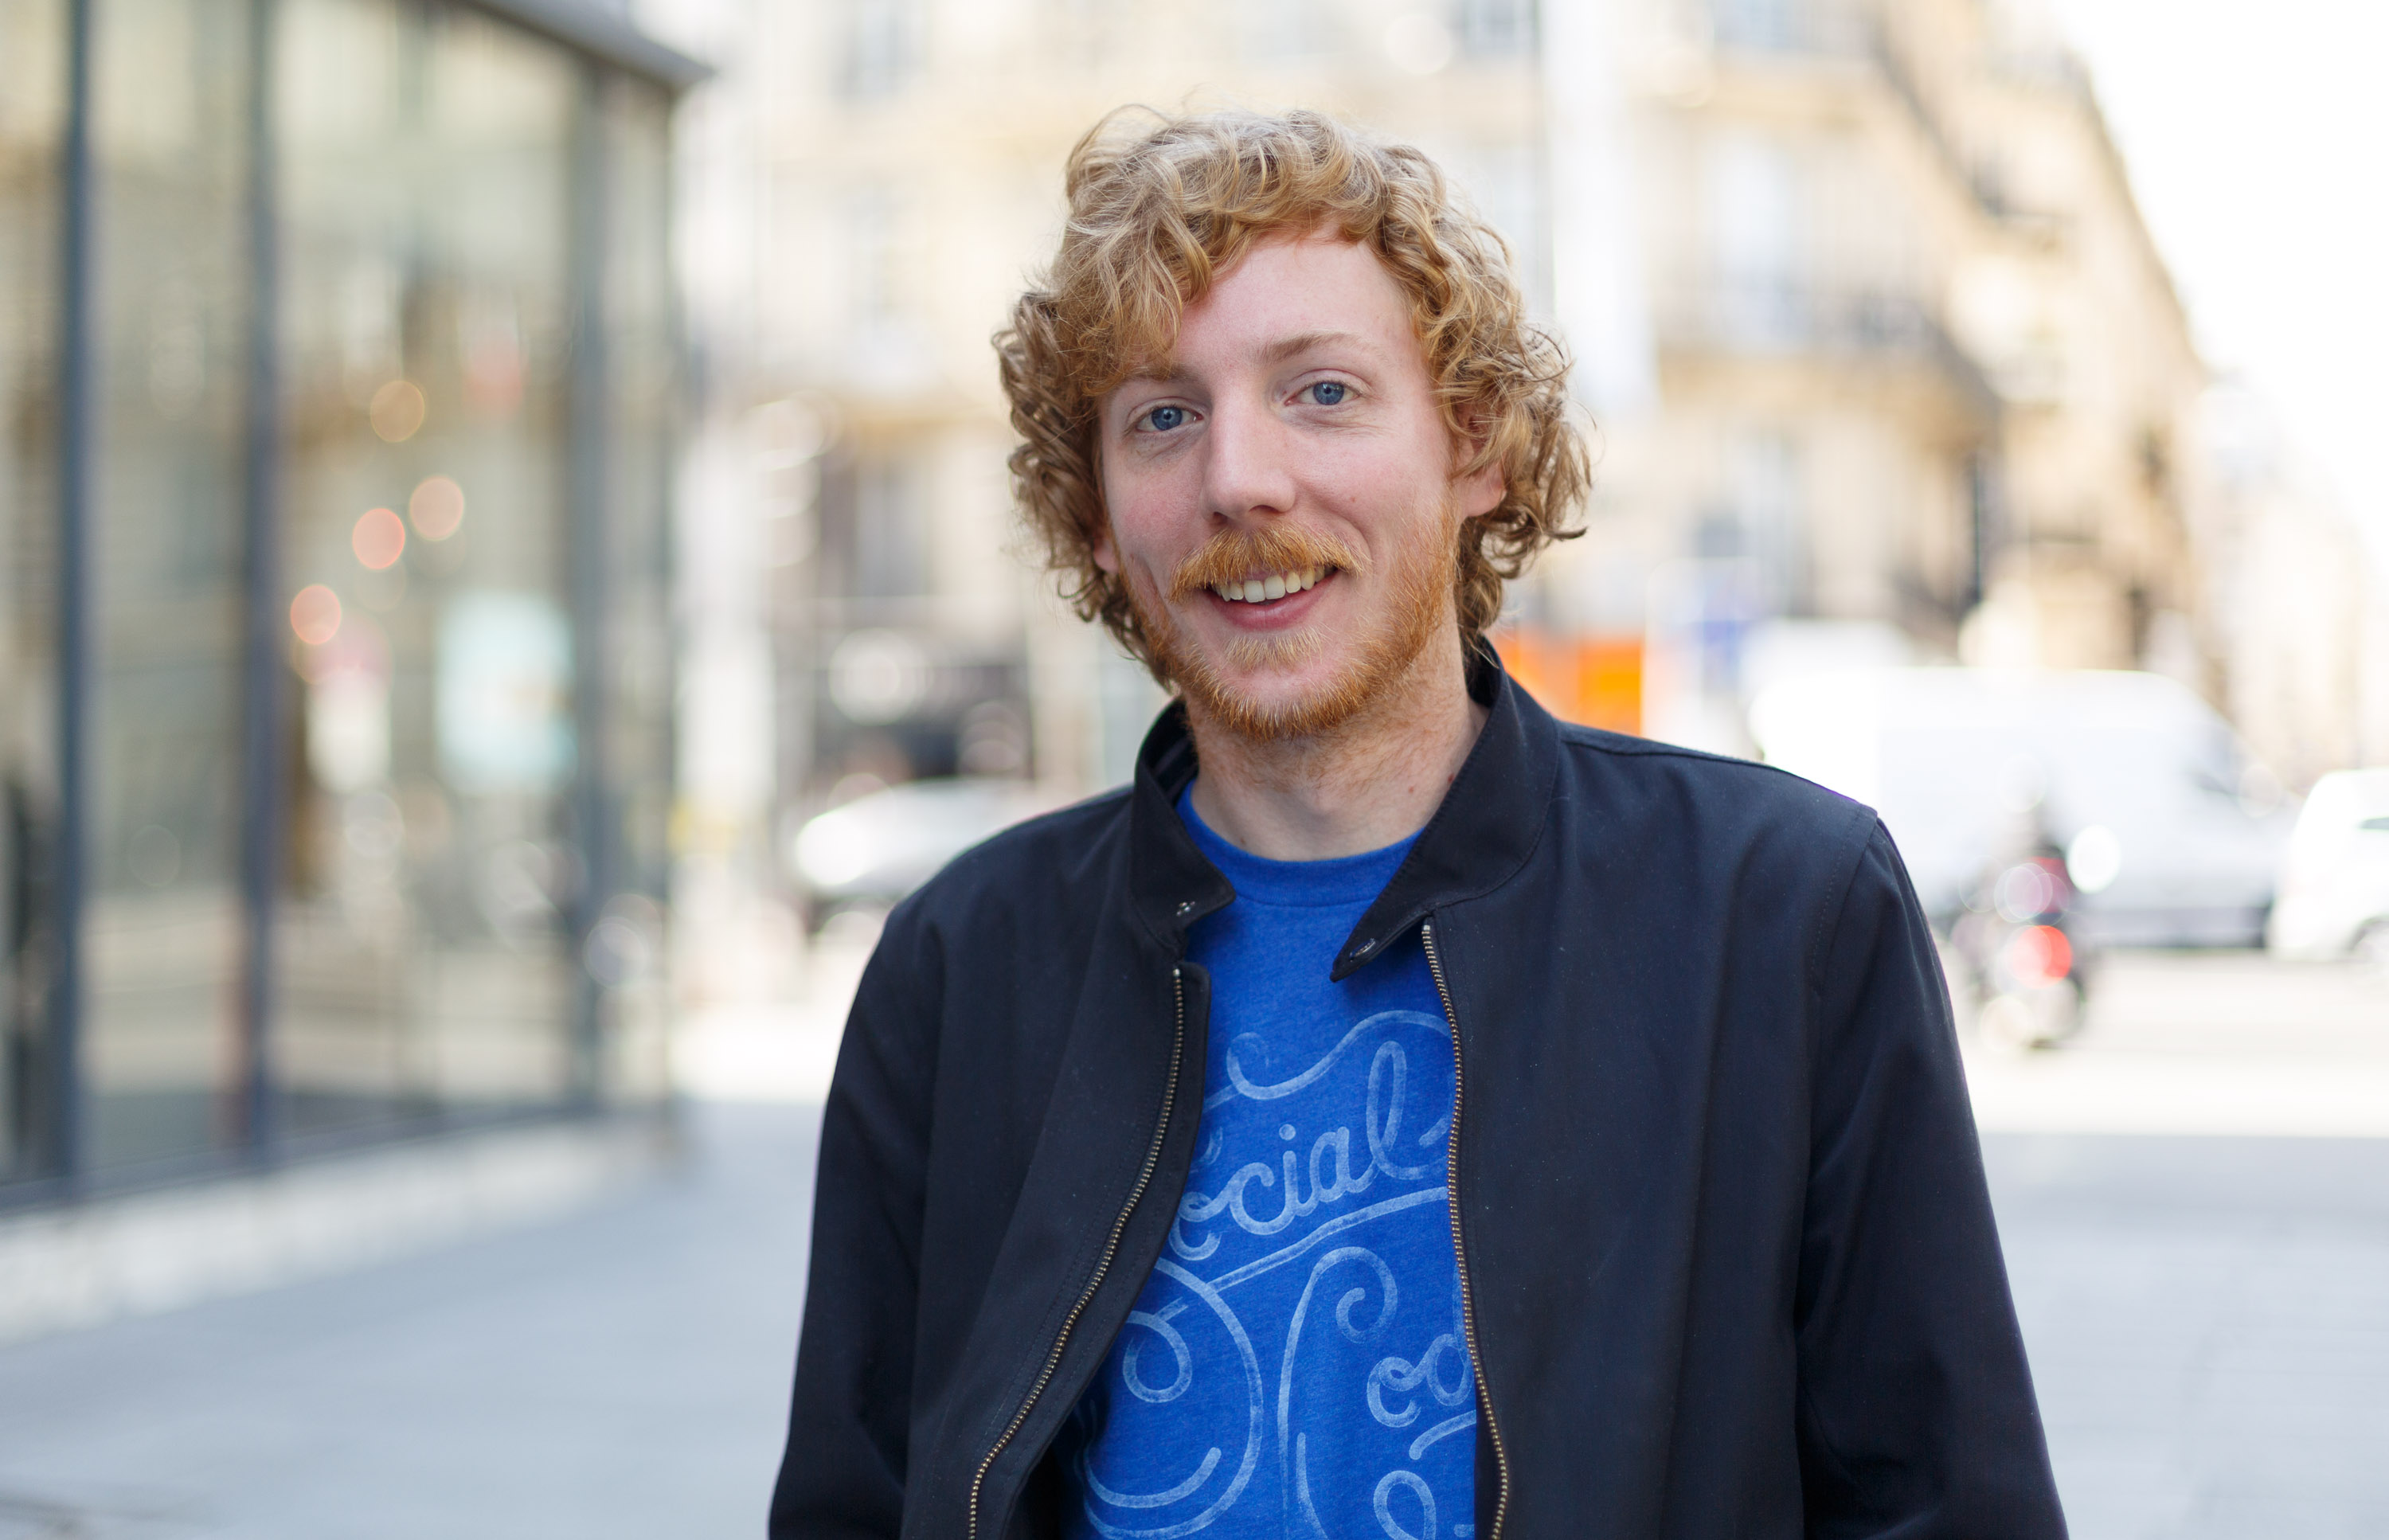 GitHub CEO and co-founder Chris Wanstrath